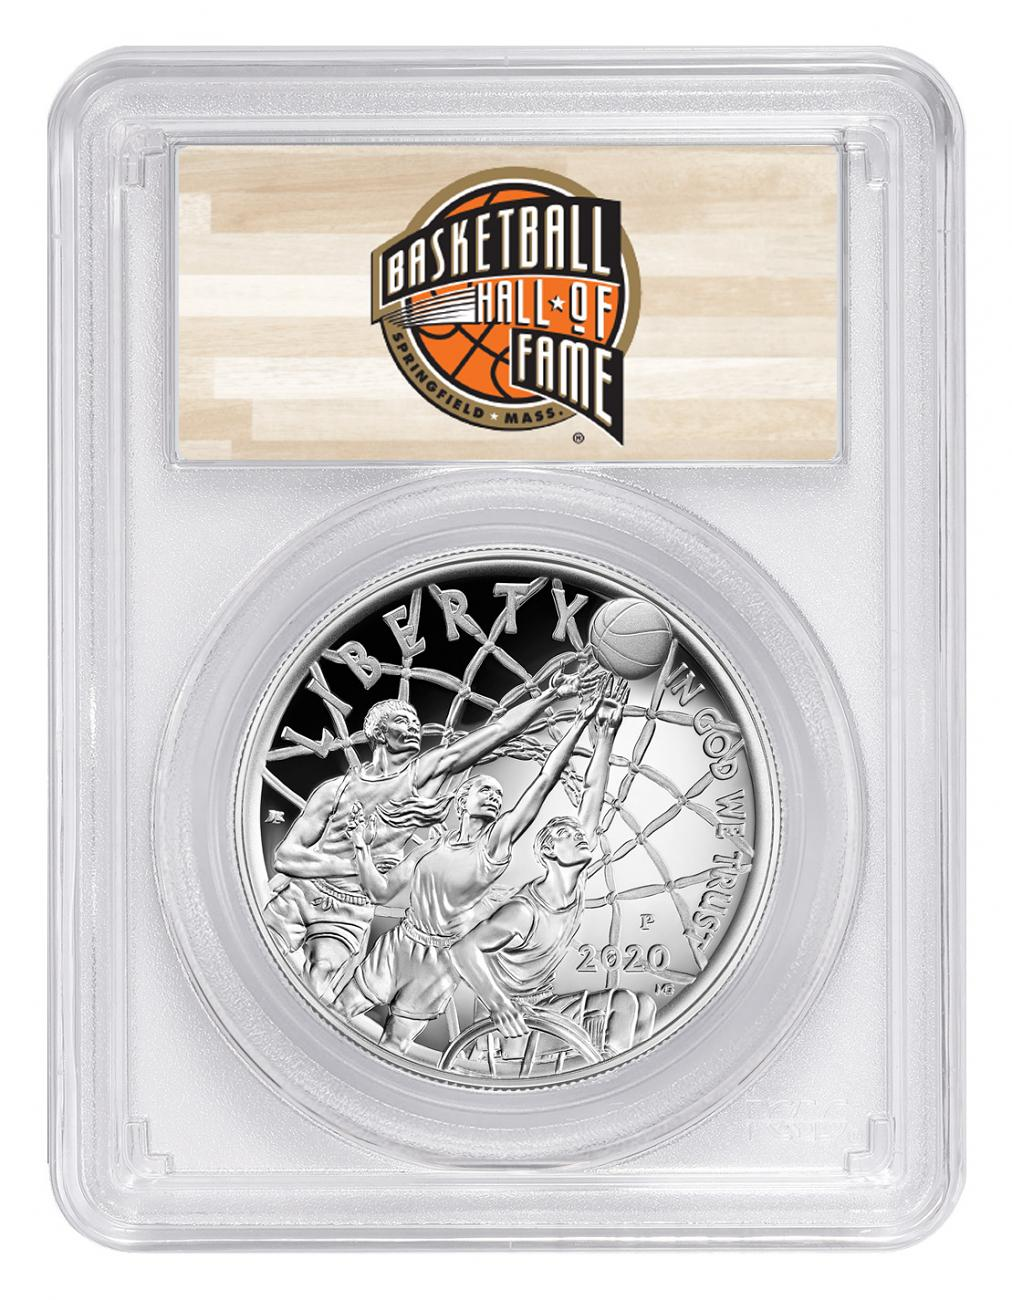 2020-P $1 Basketball Hall of Fame Silver Dollar Proof Coin PCGS PR70 DCAM FS Hall of Fame Label